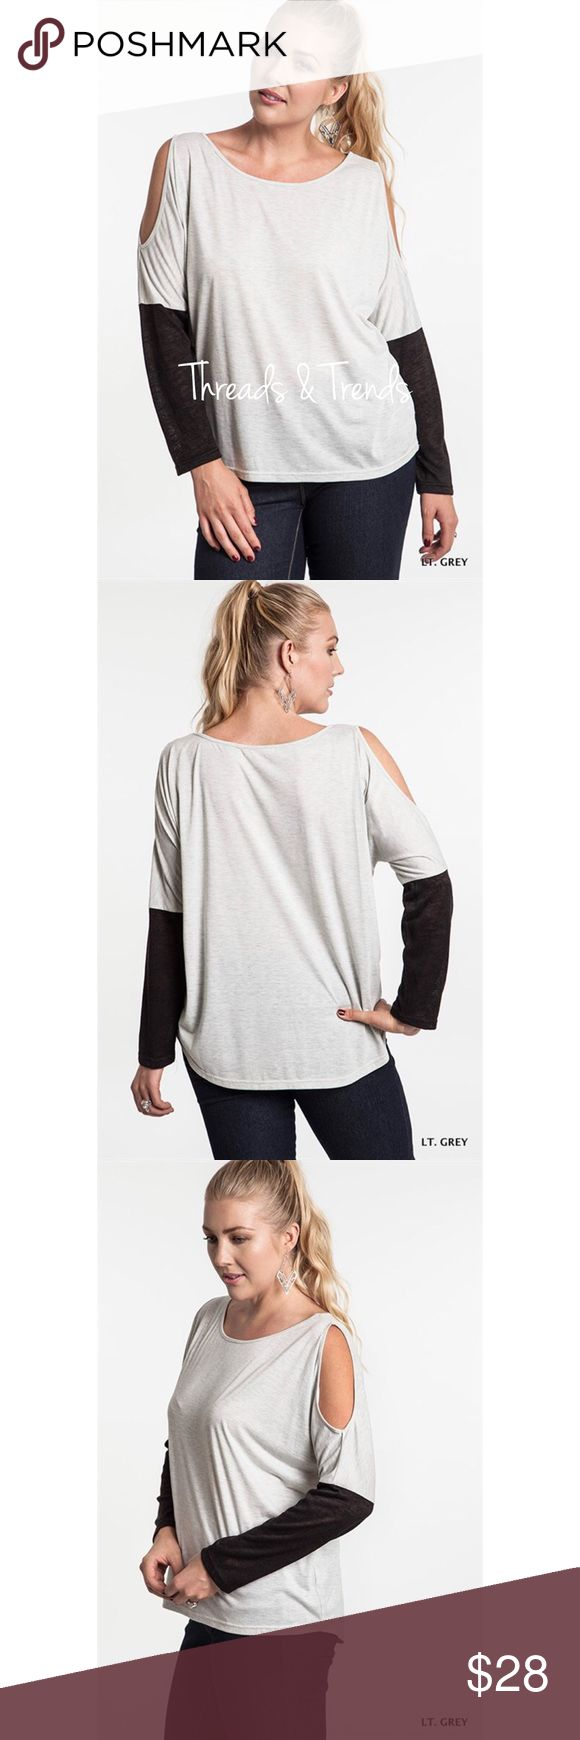 Cold Shoulder Color Block Top Heather grey and black color block top featuring cold should design. Made of poly/cotton blend. Threads & Trends Tops